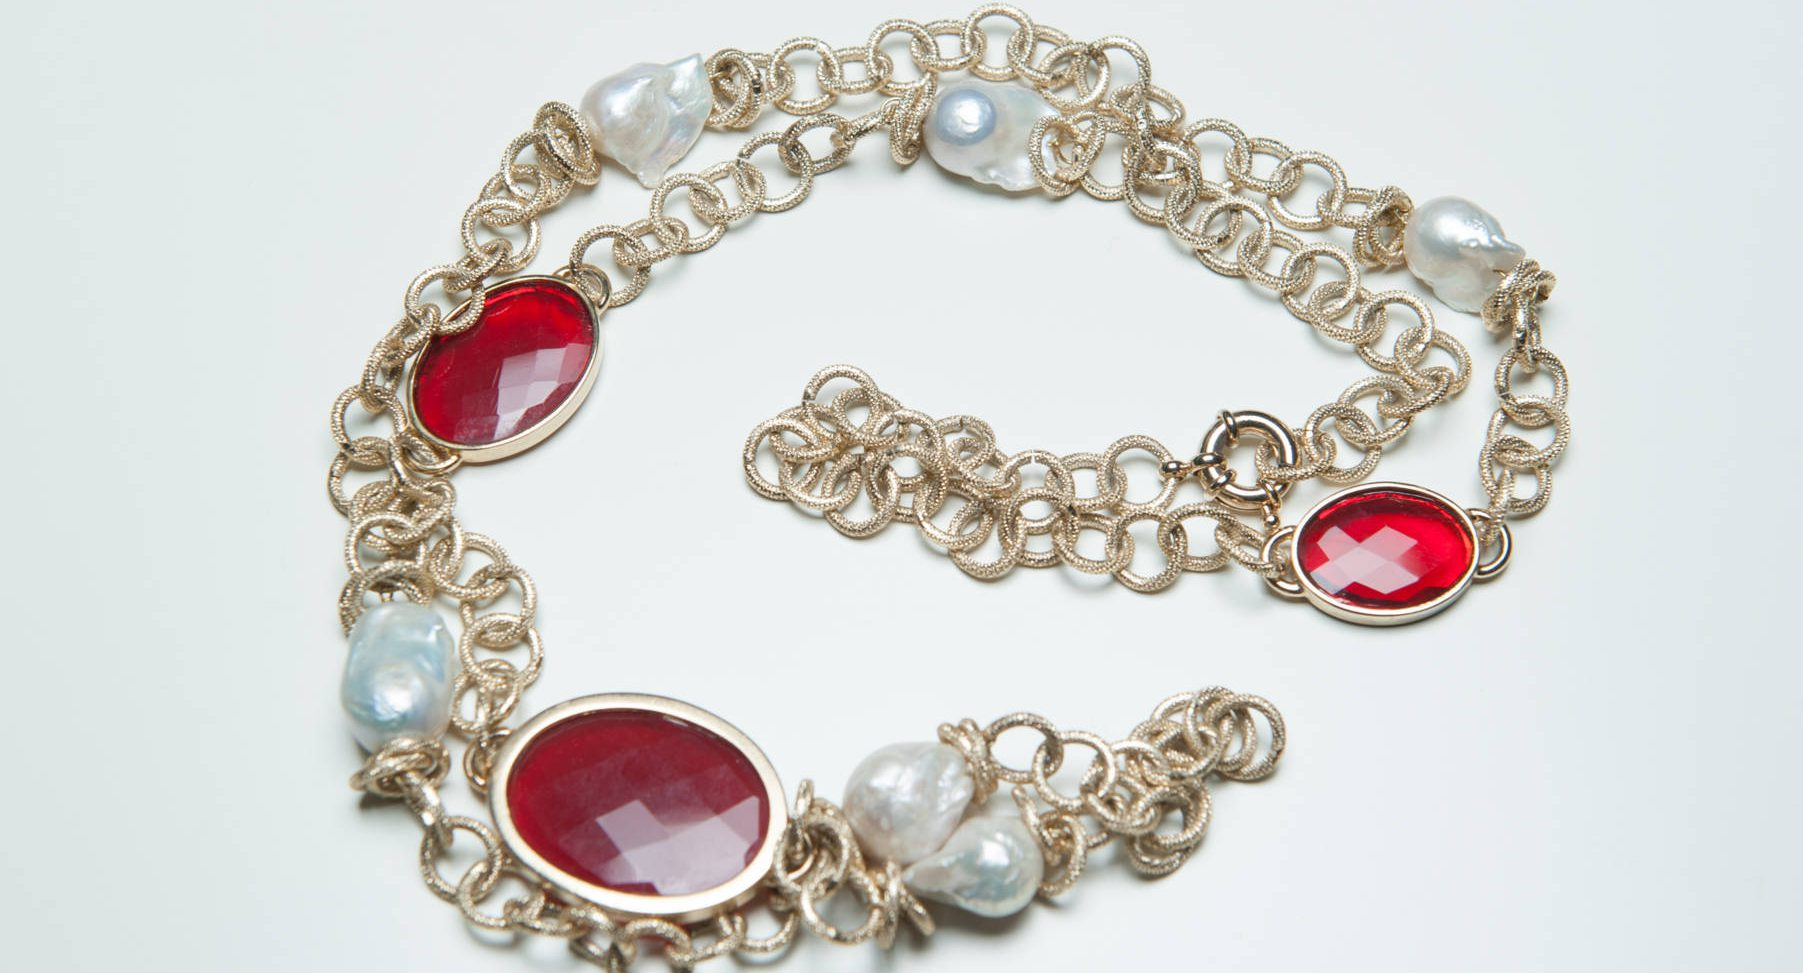 Giuseppina Fermi Red Chrystal Necklace